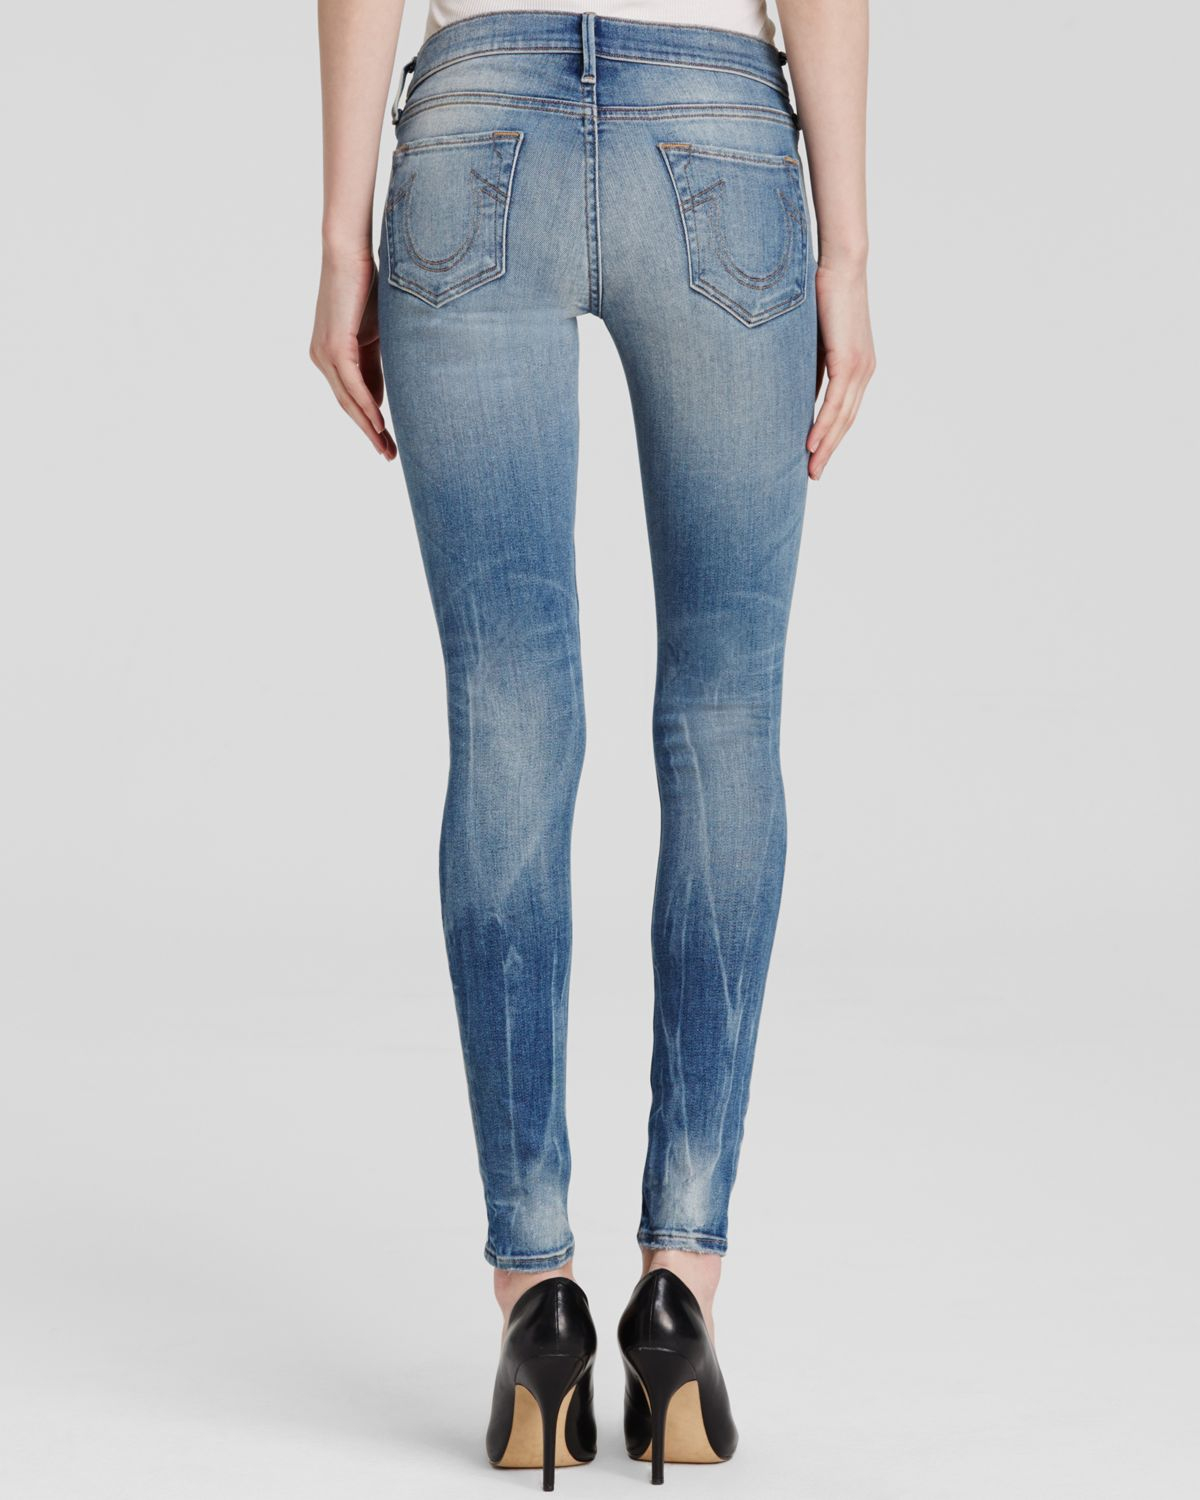 Womens Halle Destroyed Skinny Jeans True Religion